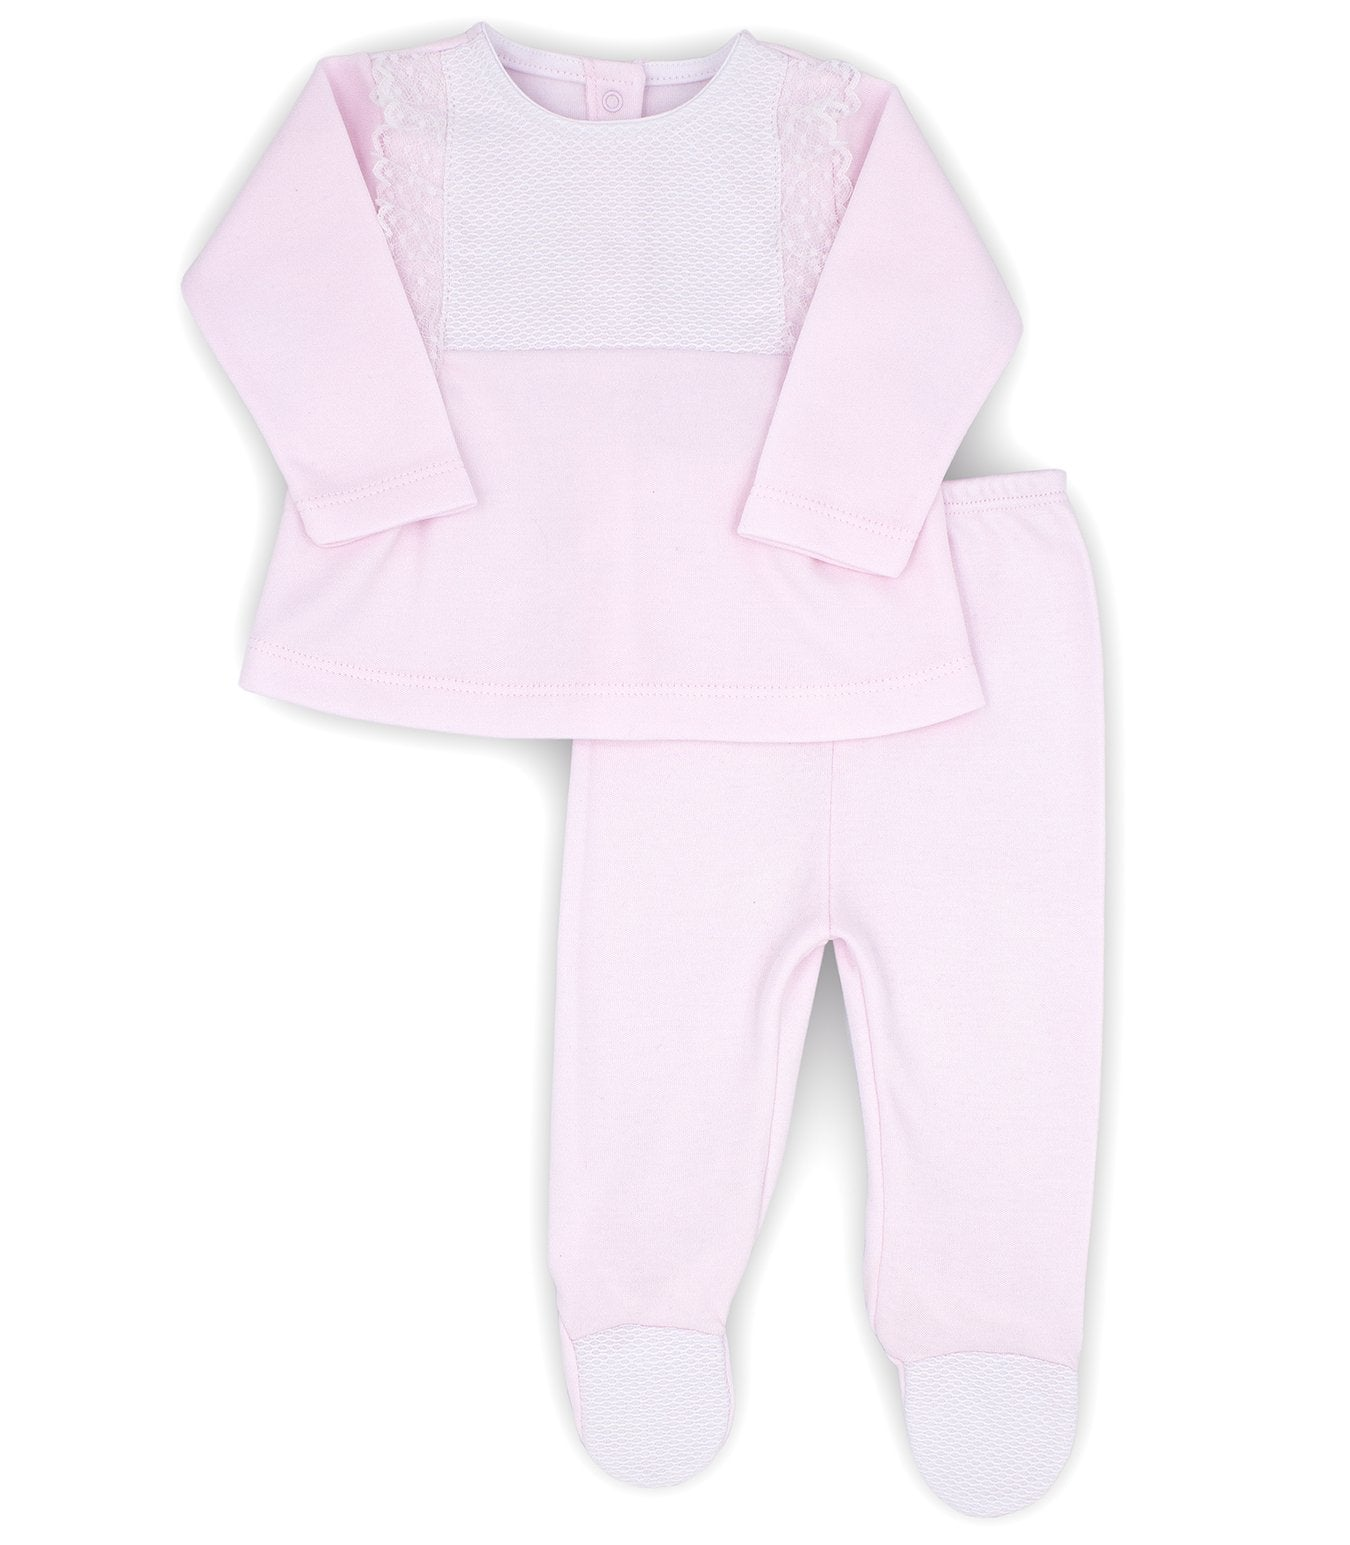 Rapife AW20 Pink Cotton 2 Piece Set